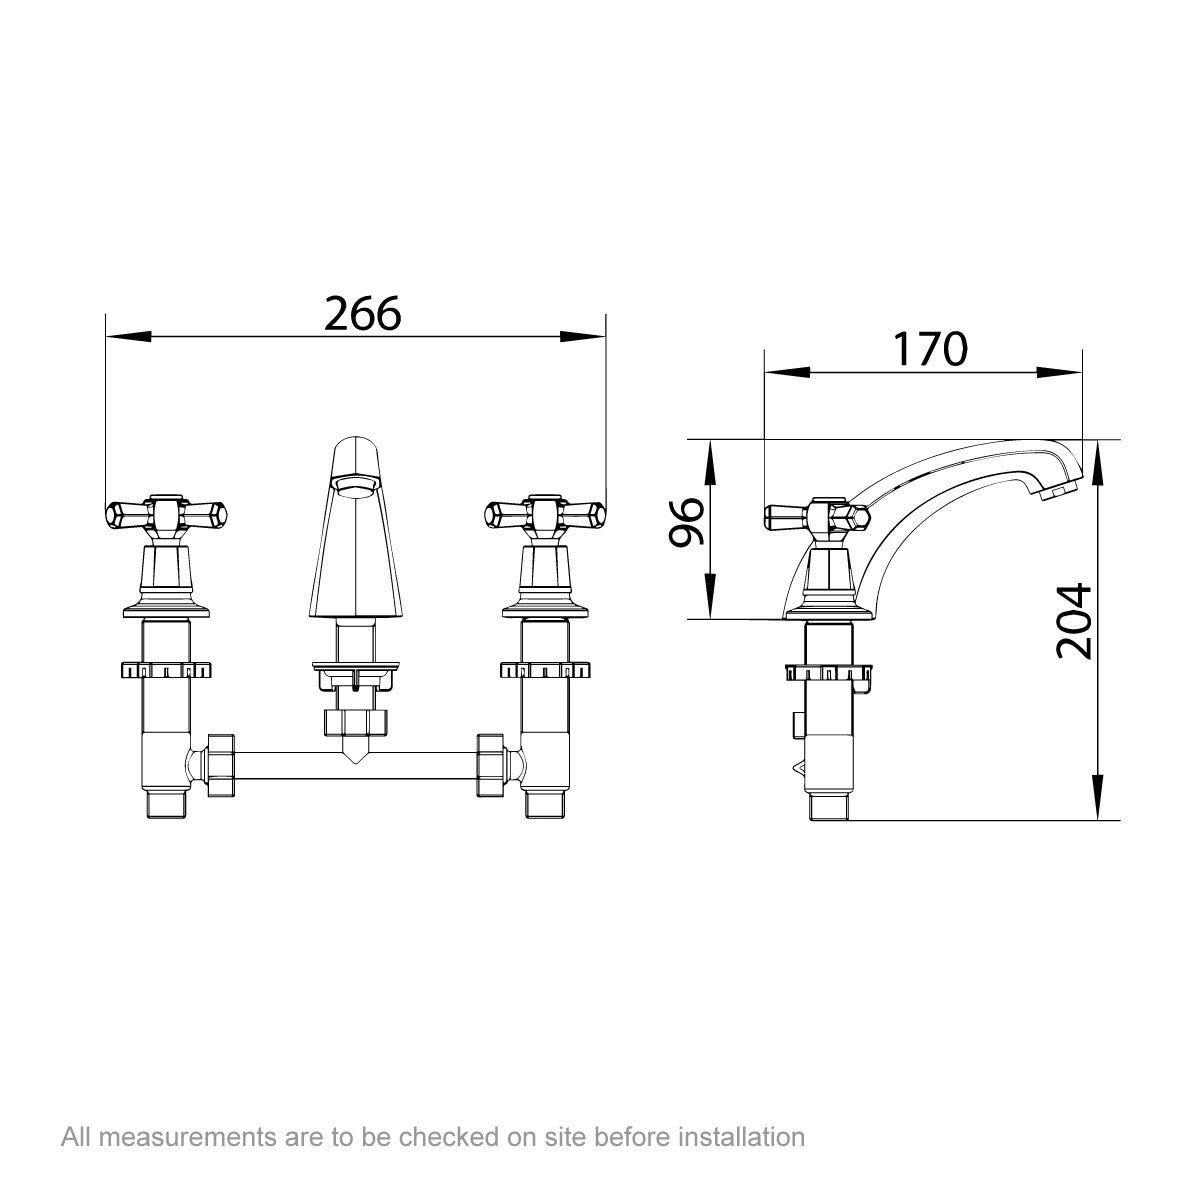 Dimensions for The Bath Co. Beaumont 3 hole basin mixer tap